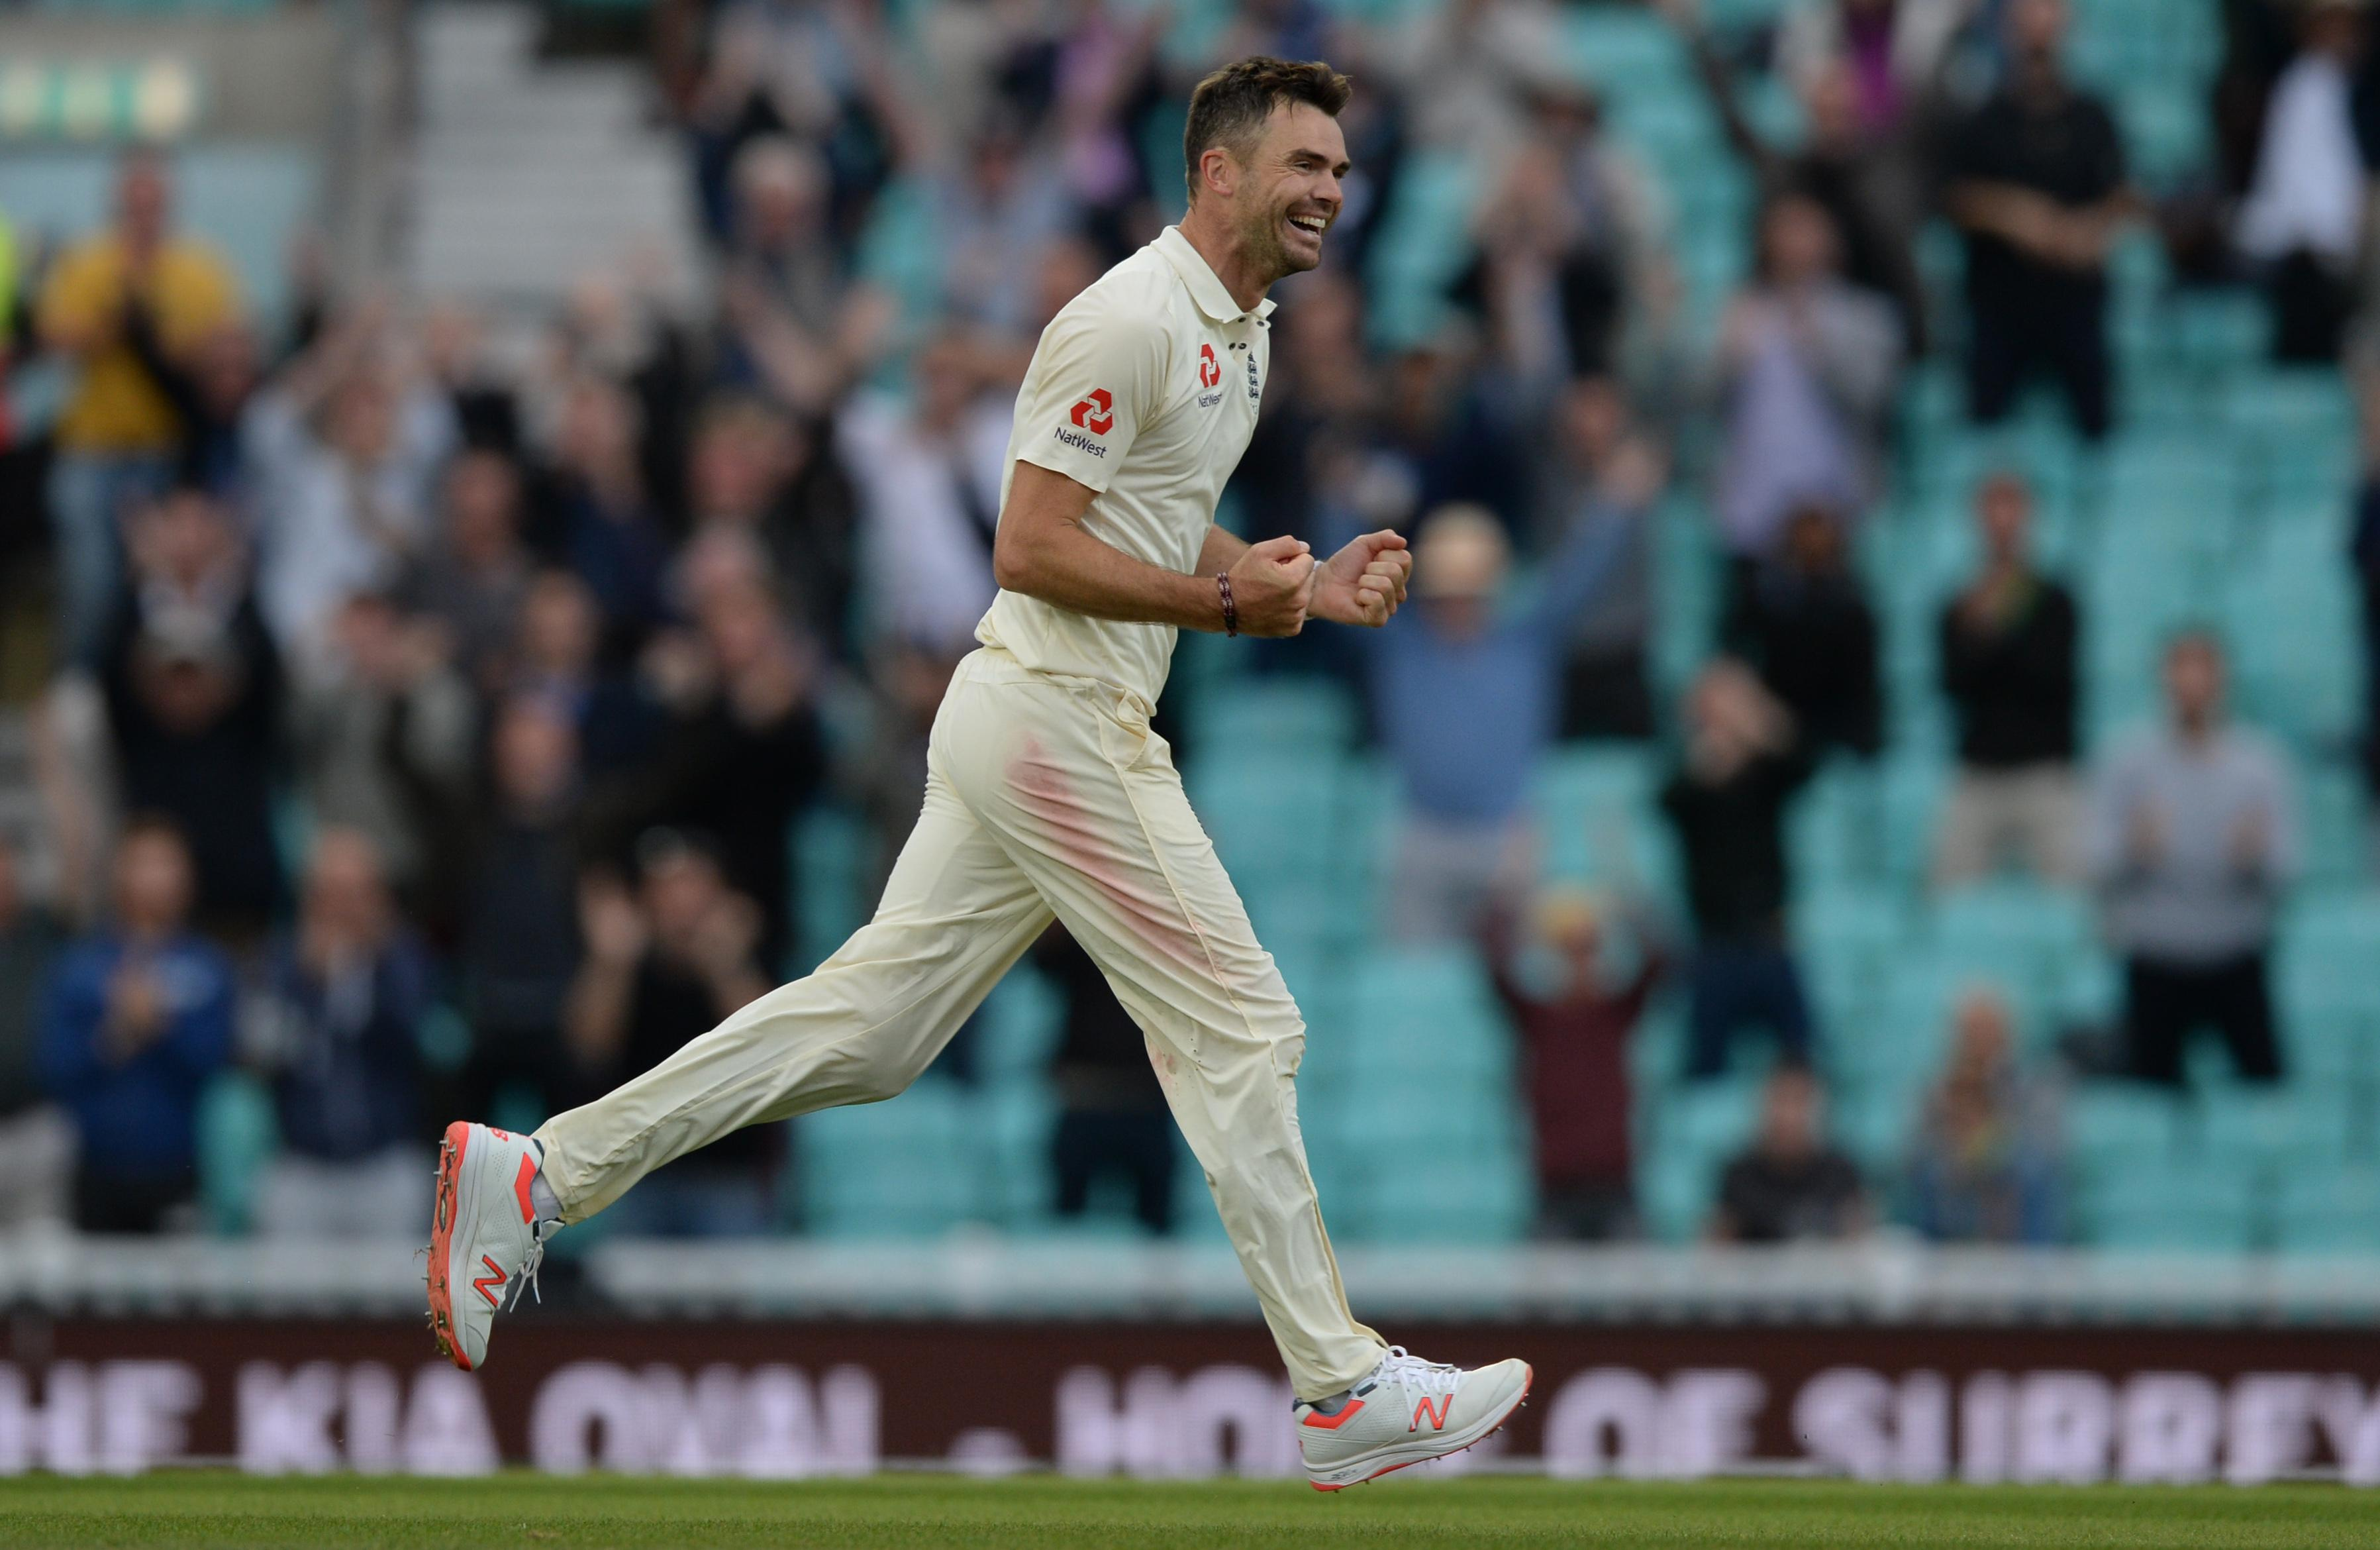 James Anderson is a nightmare to face and one of the true bowling greats, says KP